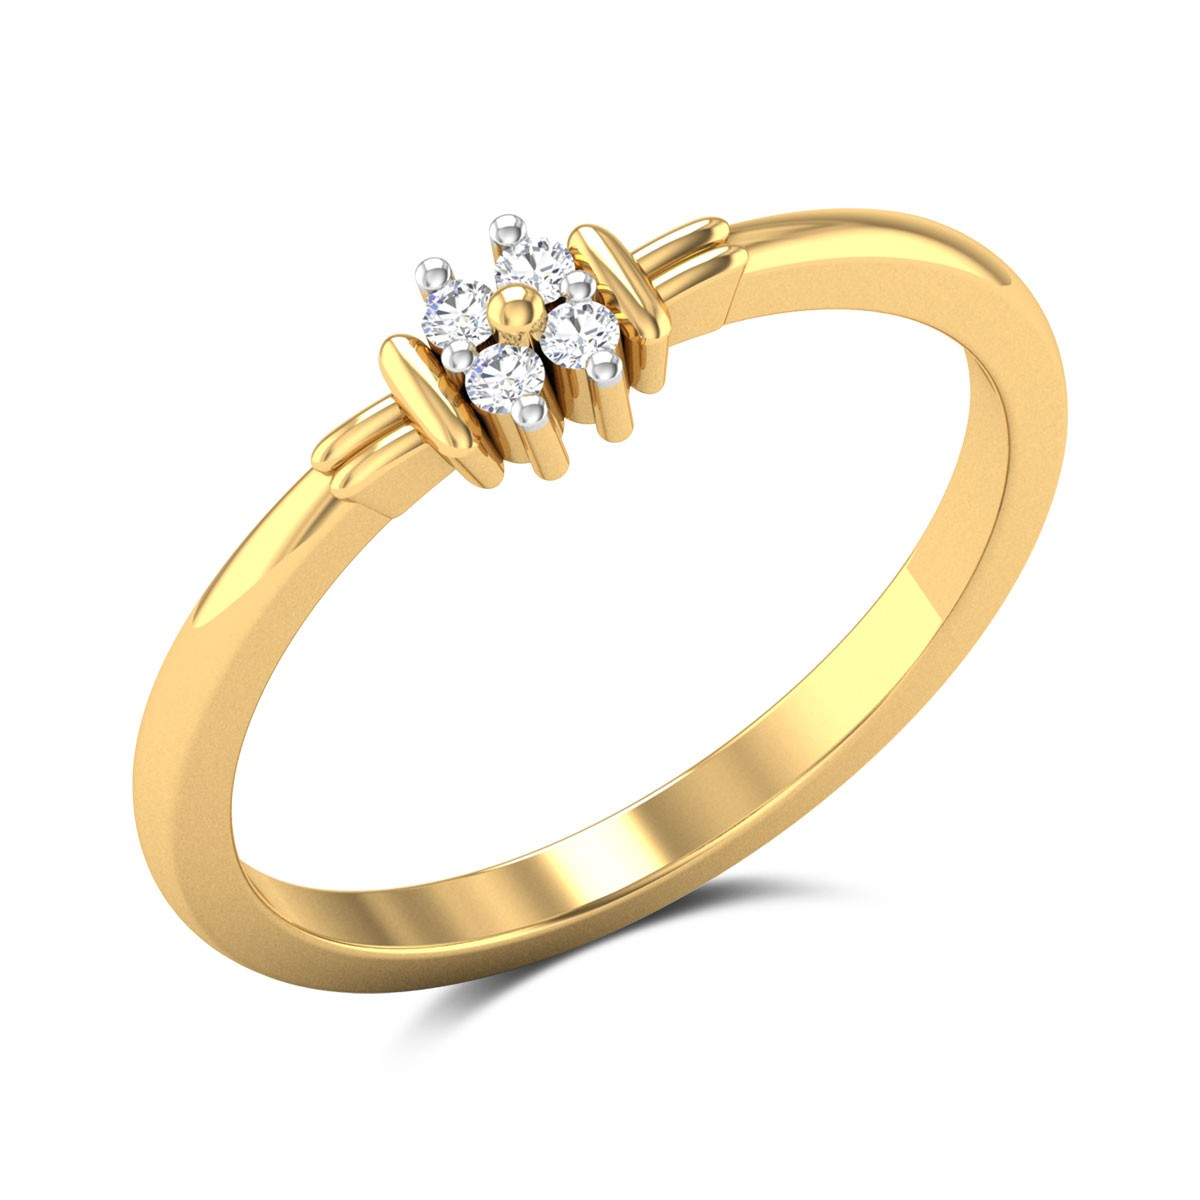 Tilly Diamond Ring